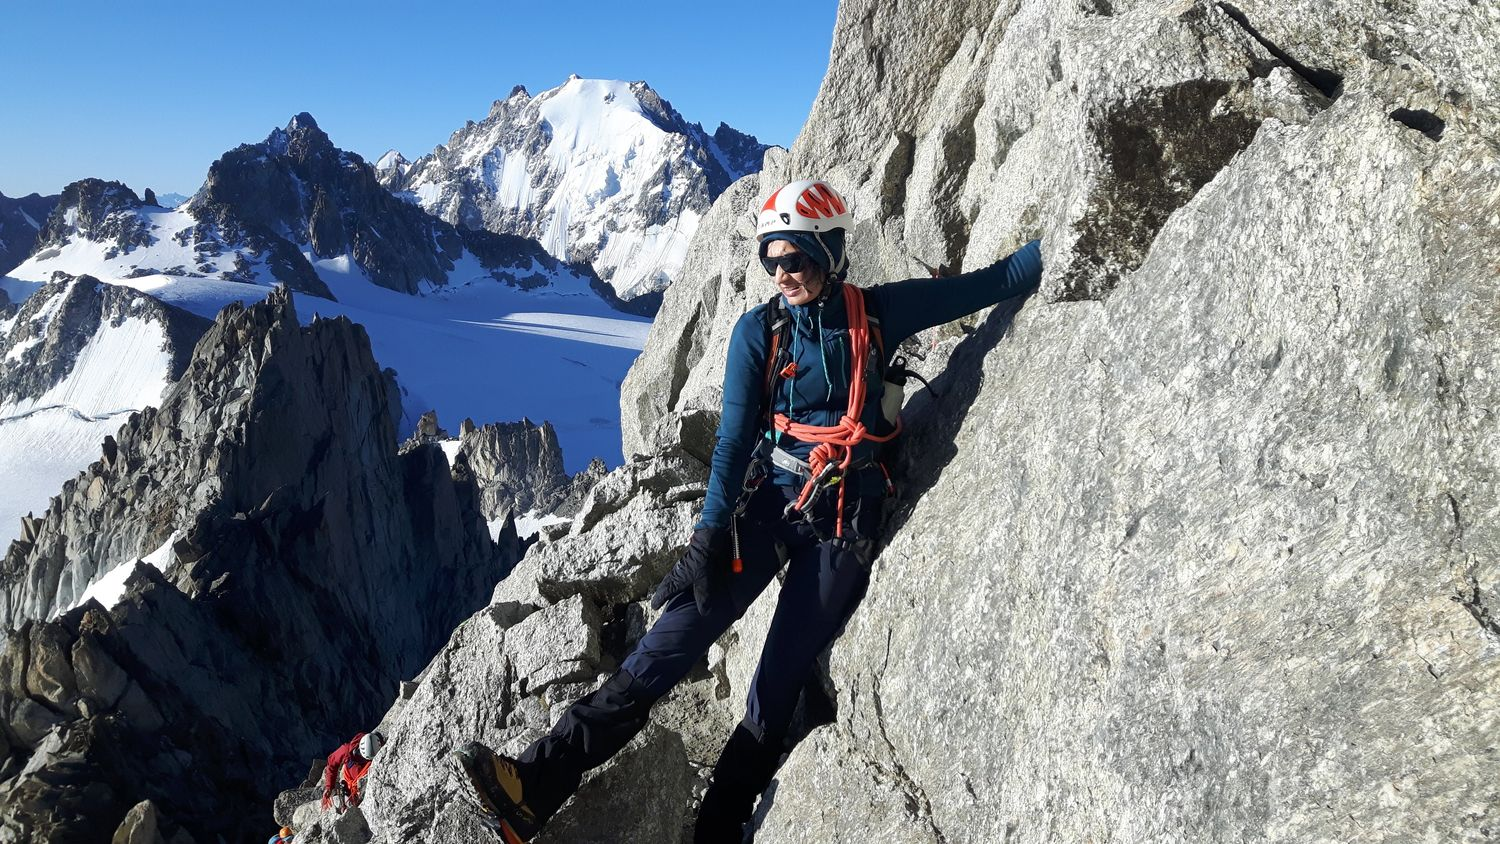 On the ascent of the Aiguille du Tour